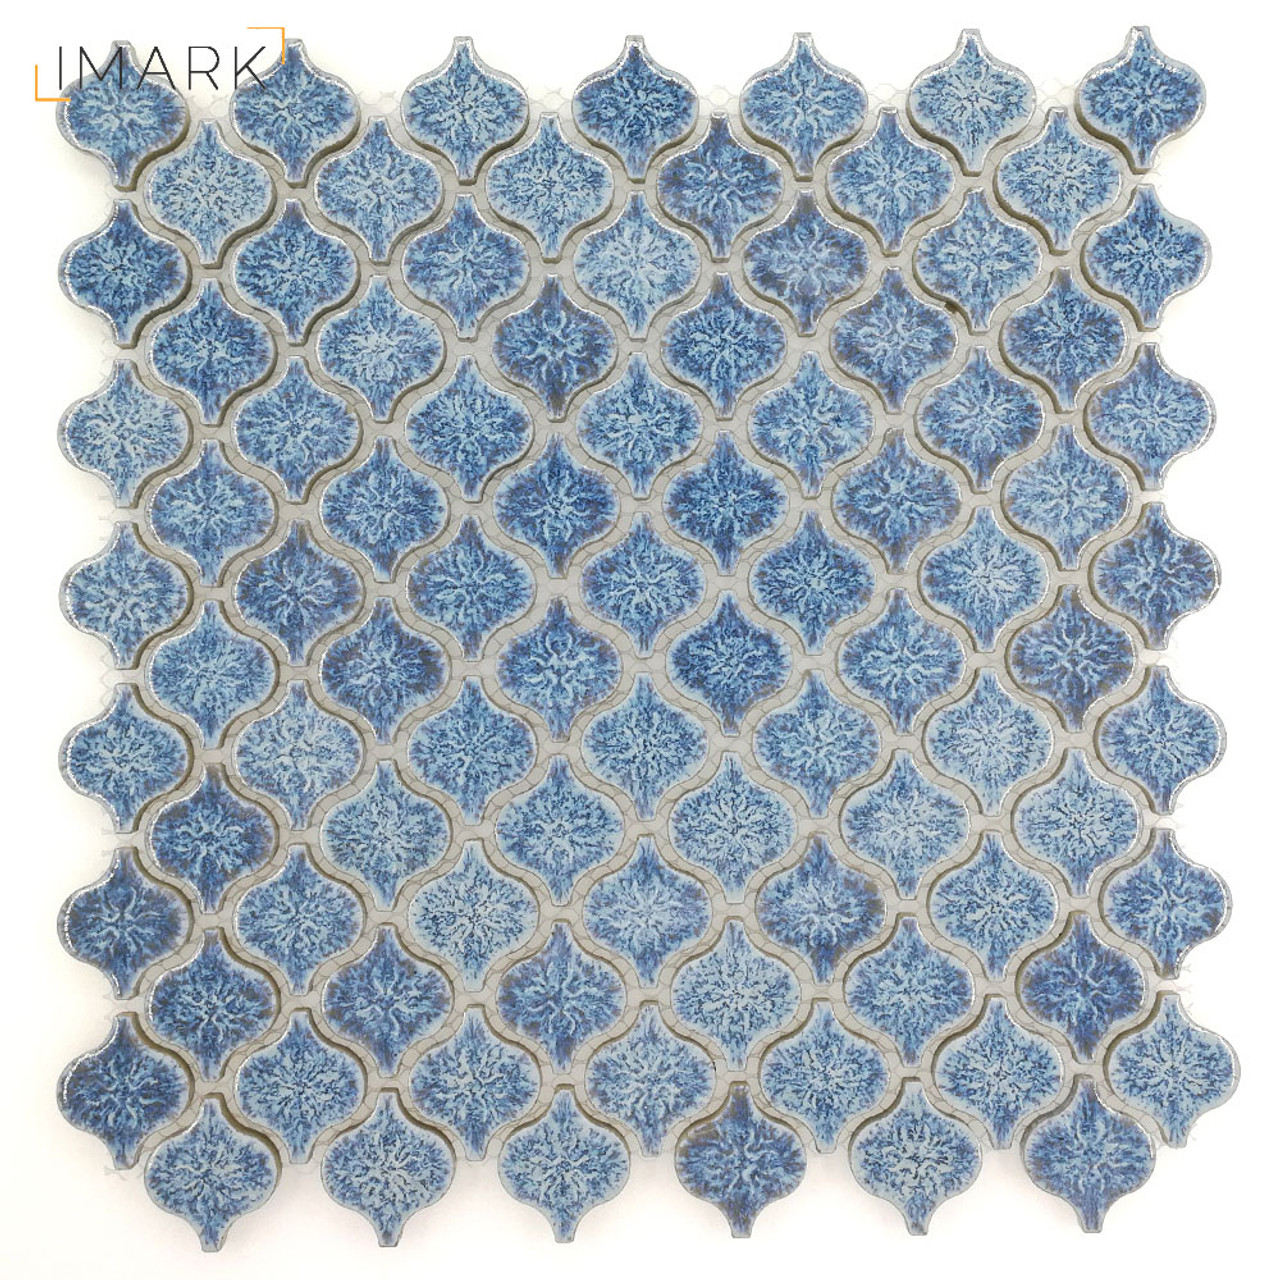 Lantern Mini Cobalt Blue Ceramic Mosaic Tile For Backsplash Tile ...